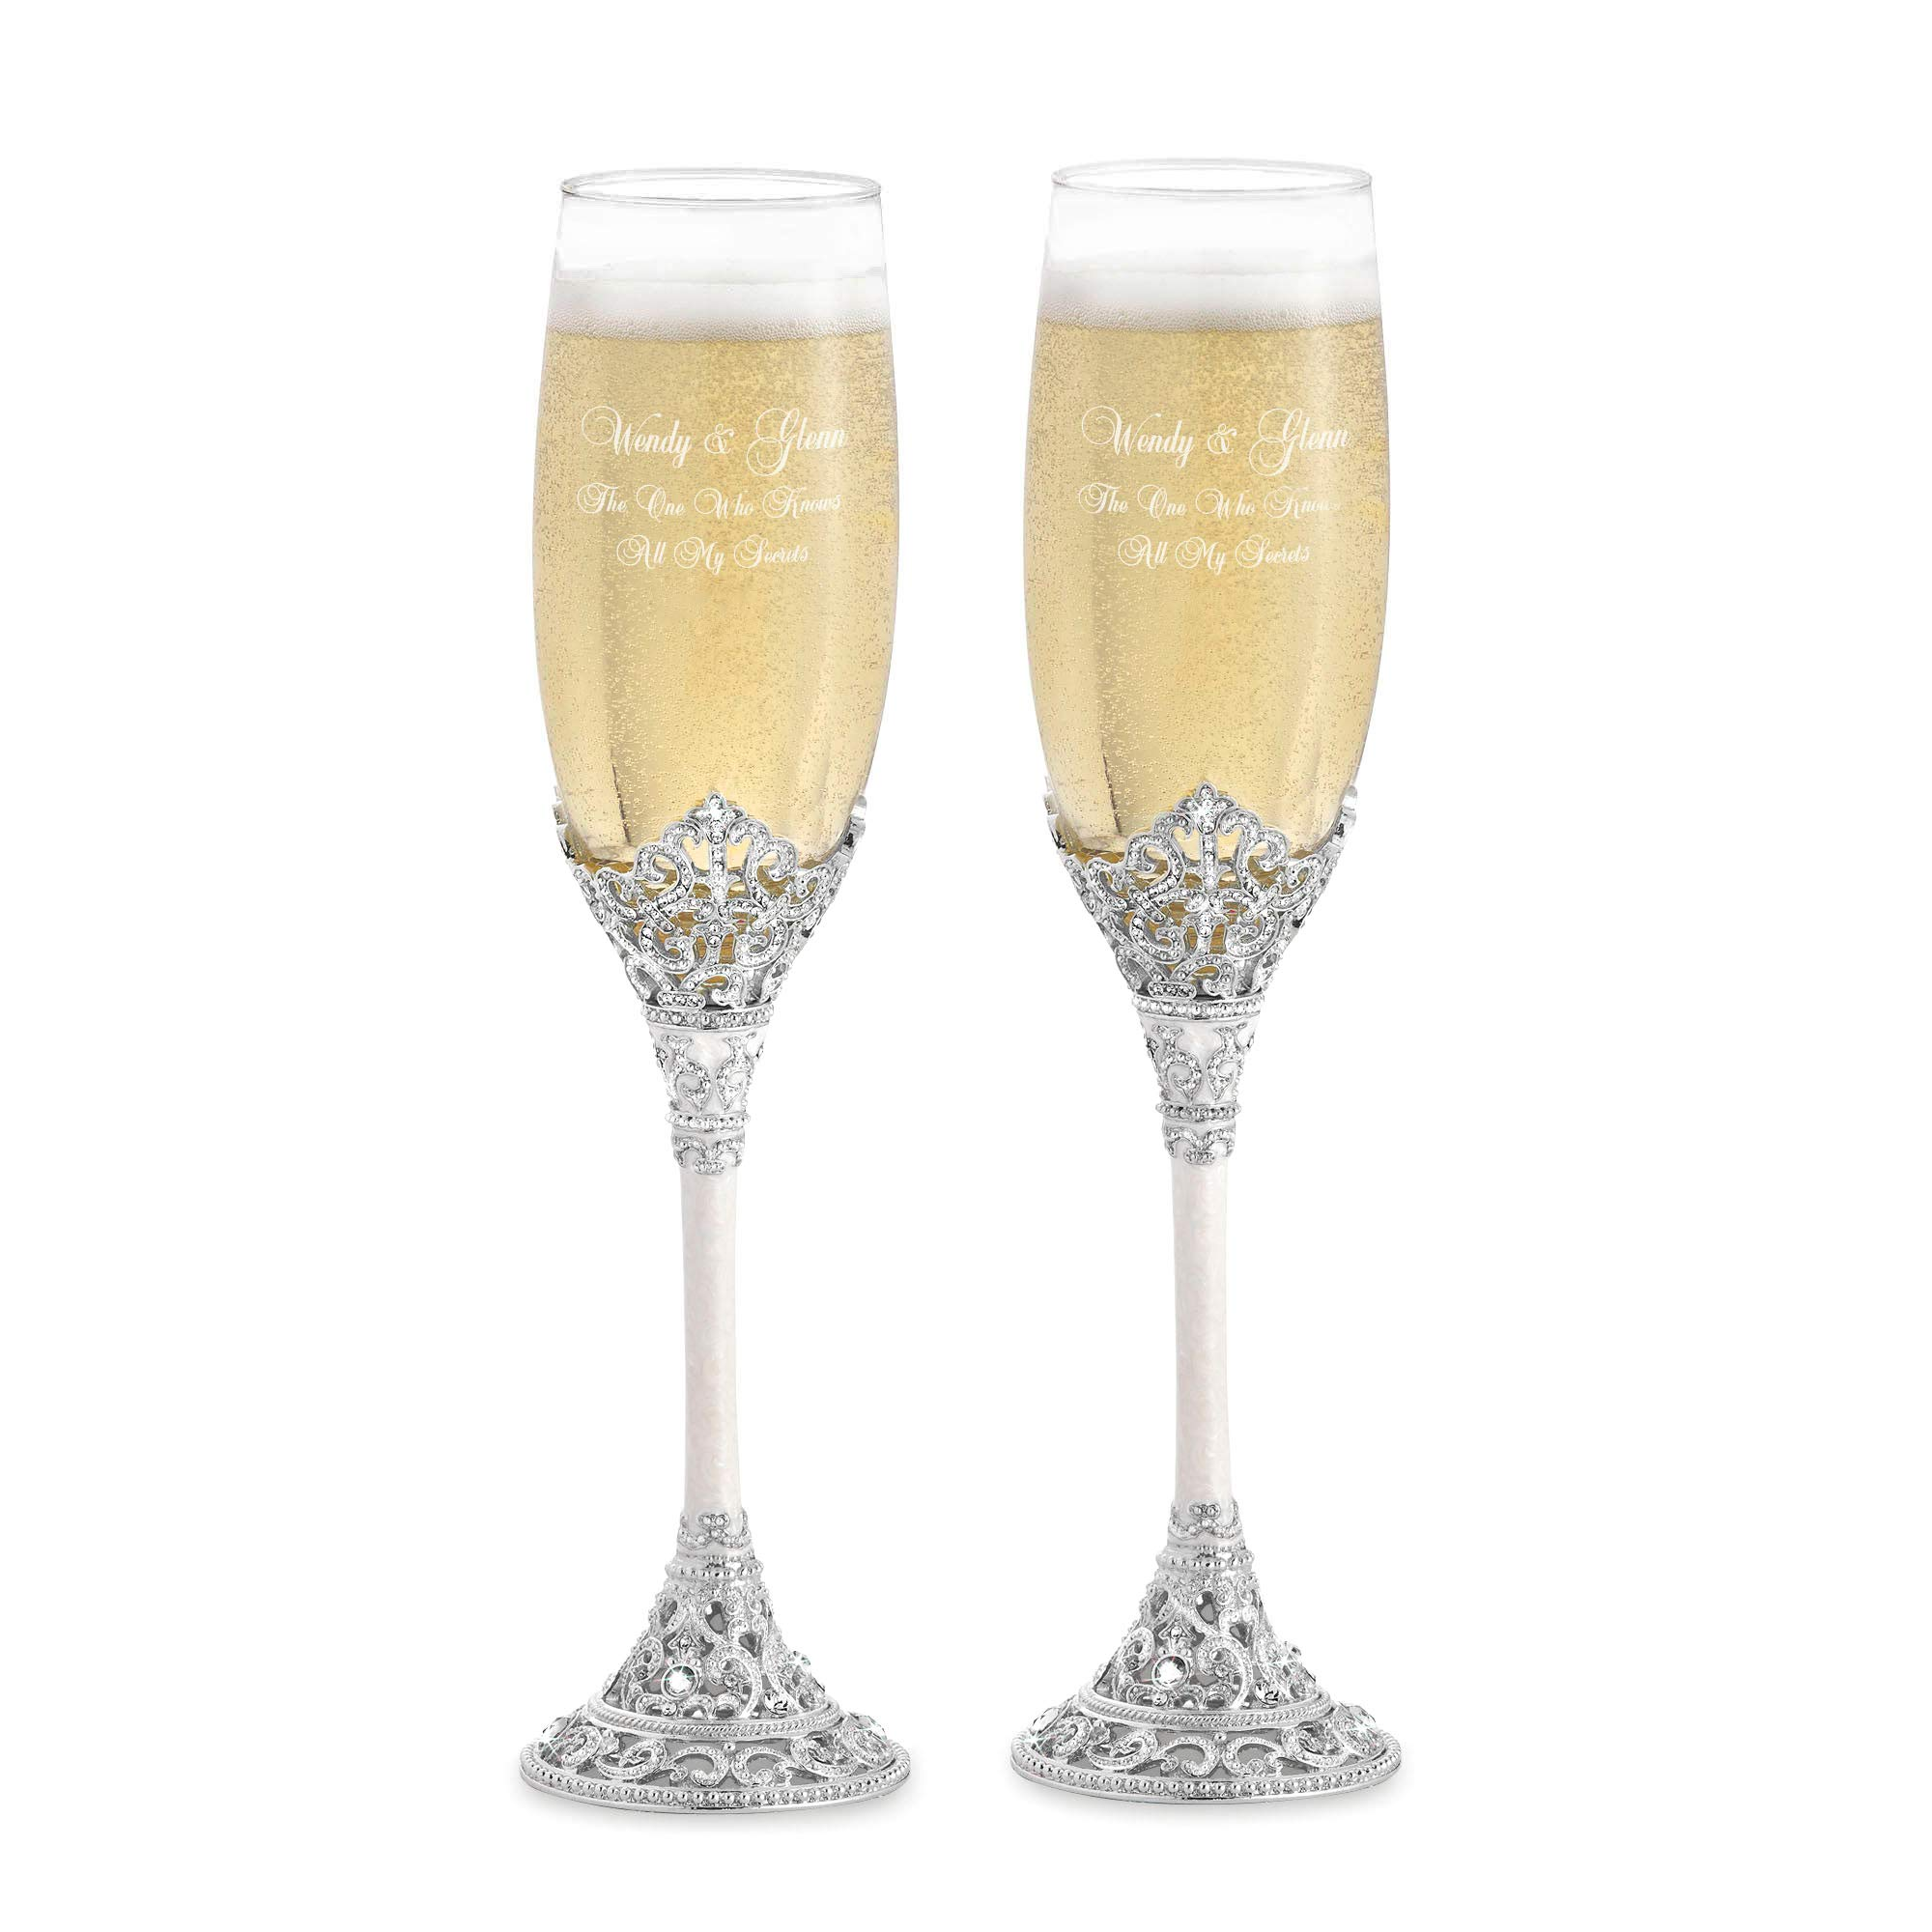 Things Remembered Personalized Fifth Avenue Toasting Flutes Set with Engraving Included